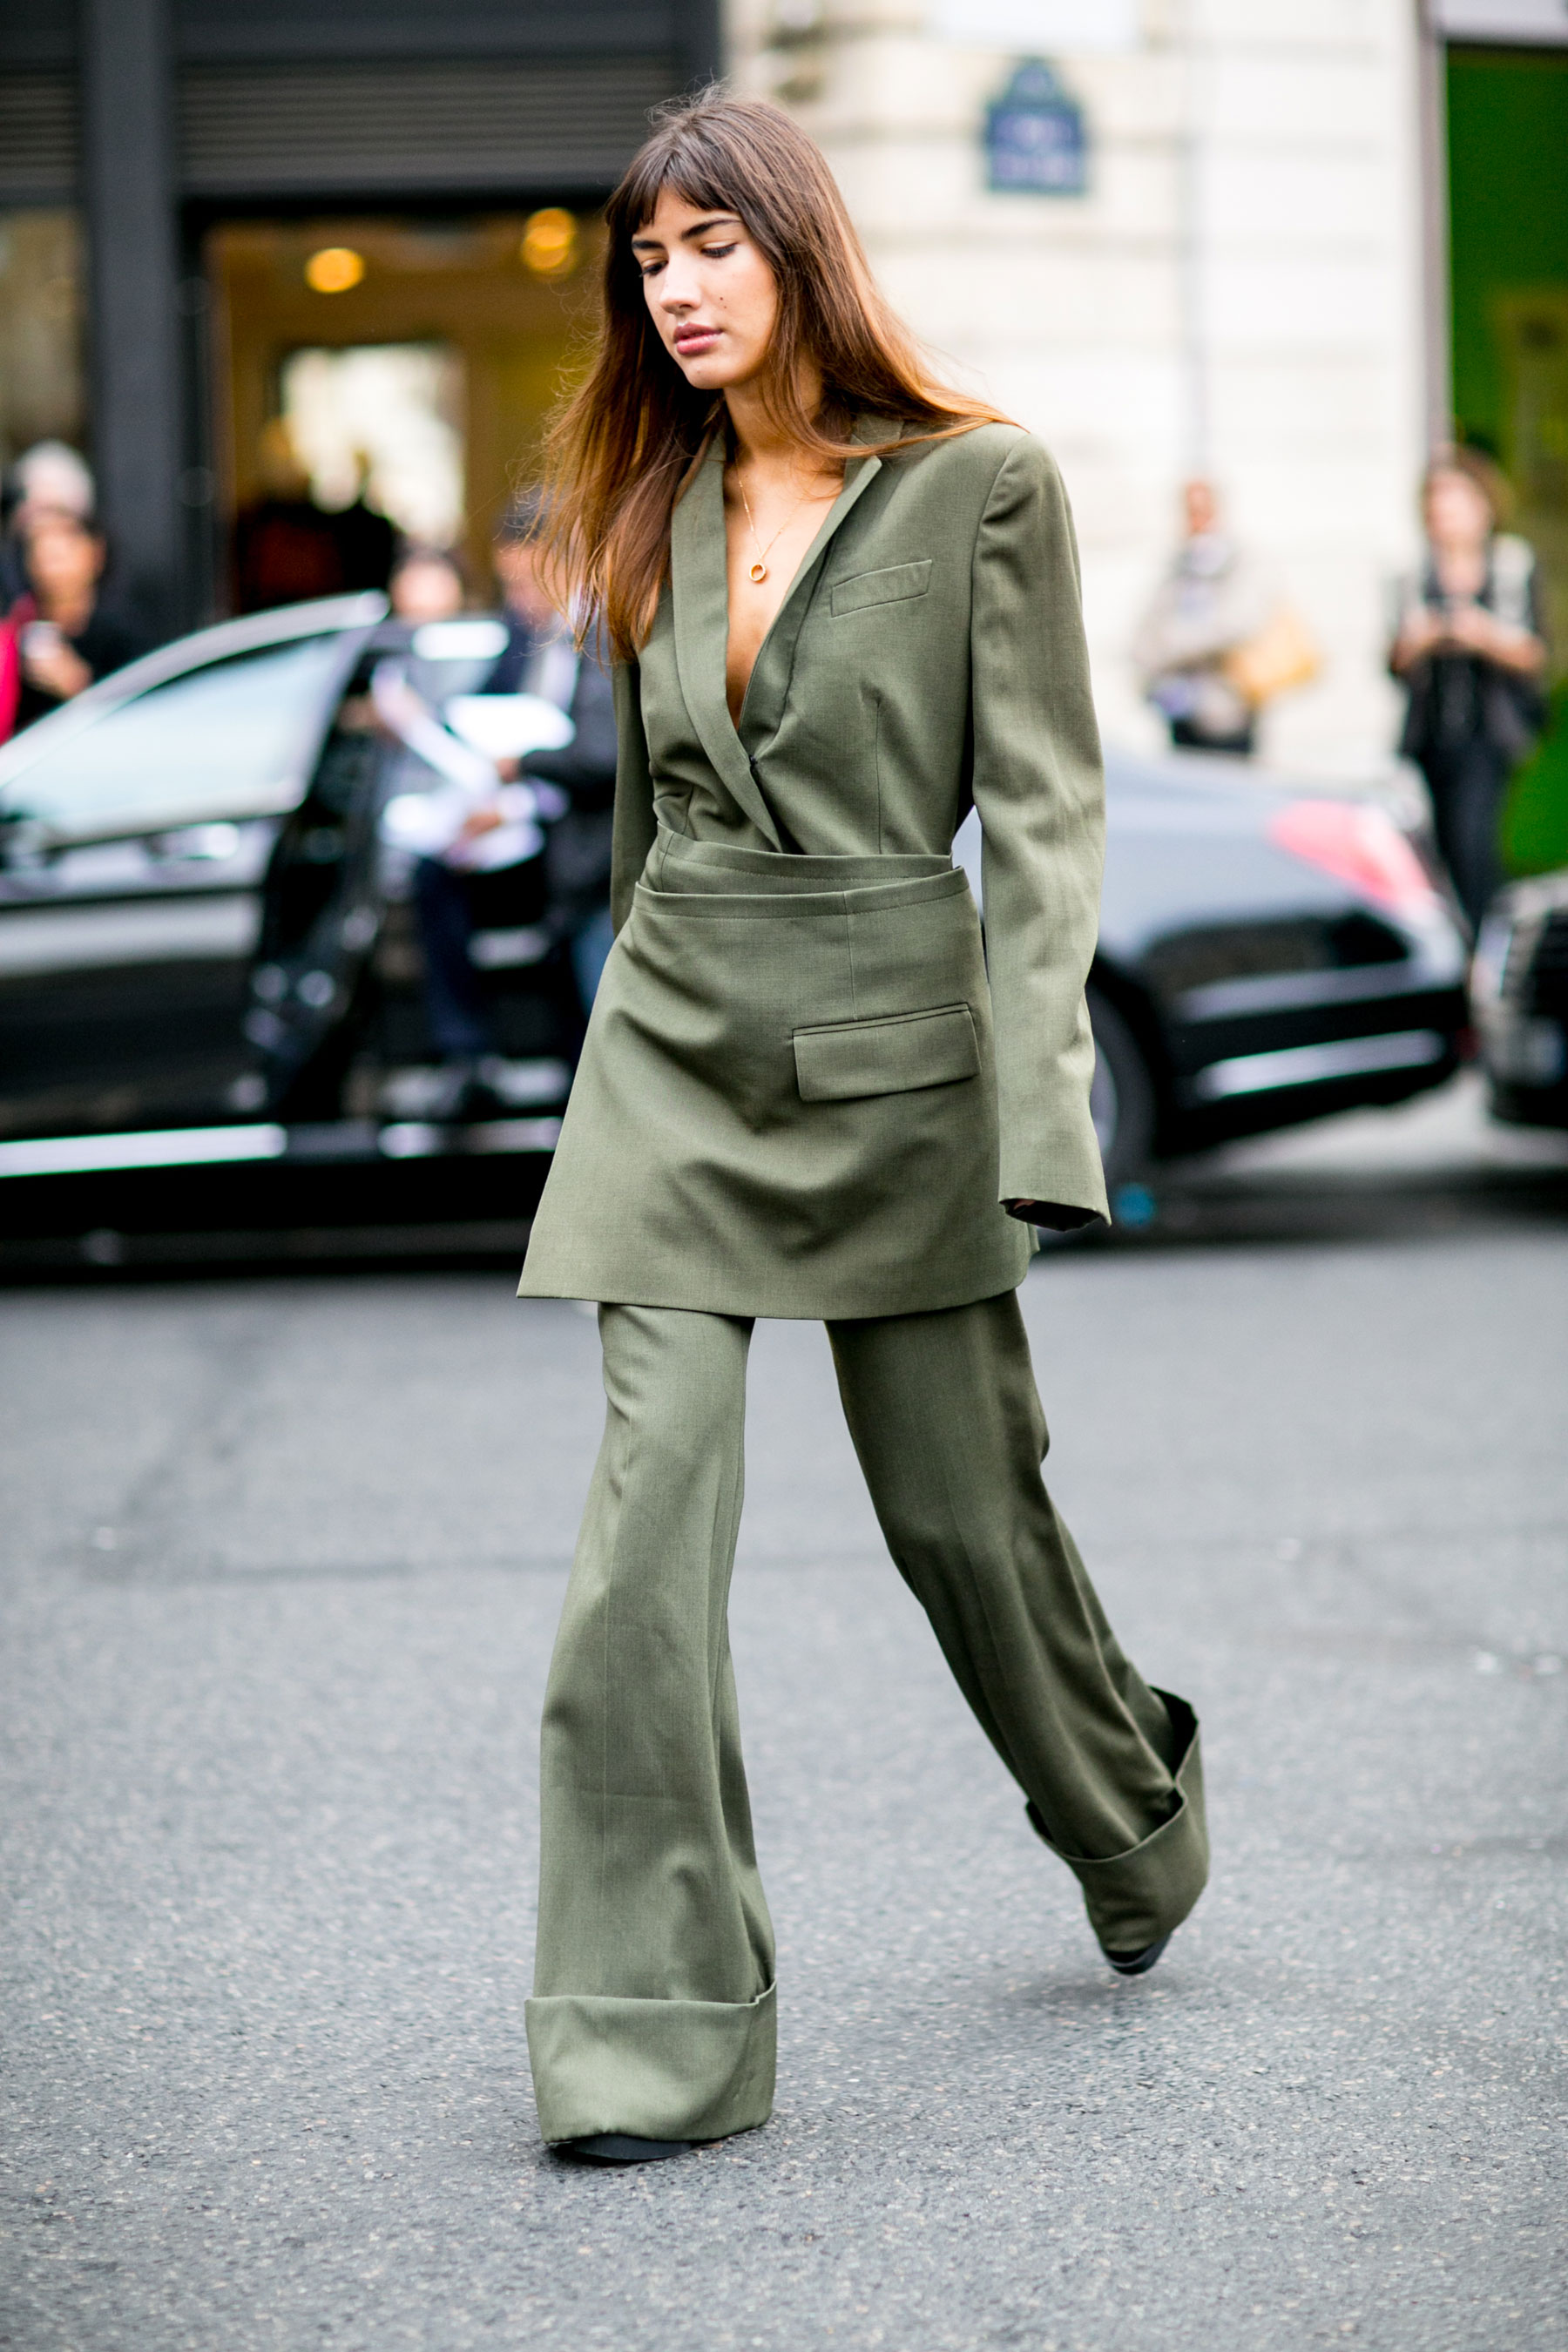 Paris-fashion-week-street-style-day-7-october-15-the-impression-32